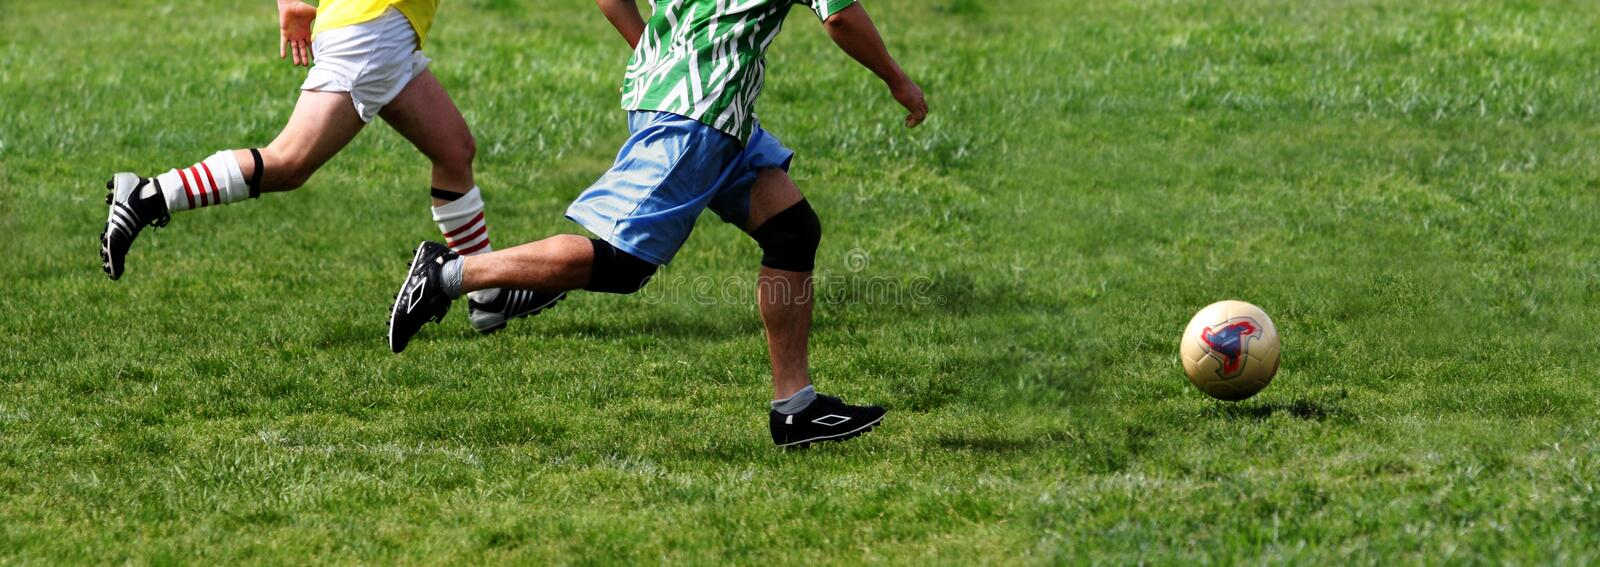 Soccer game royalty free stock image